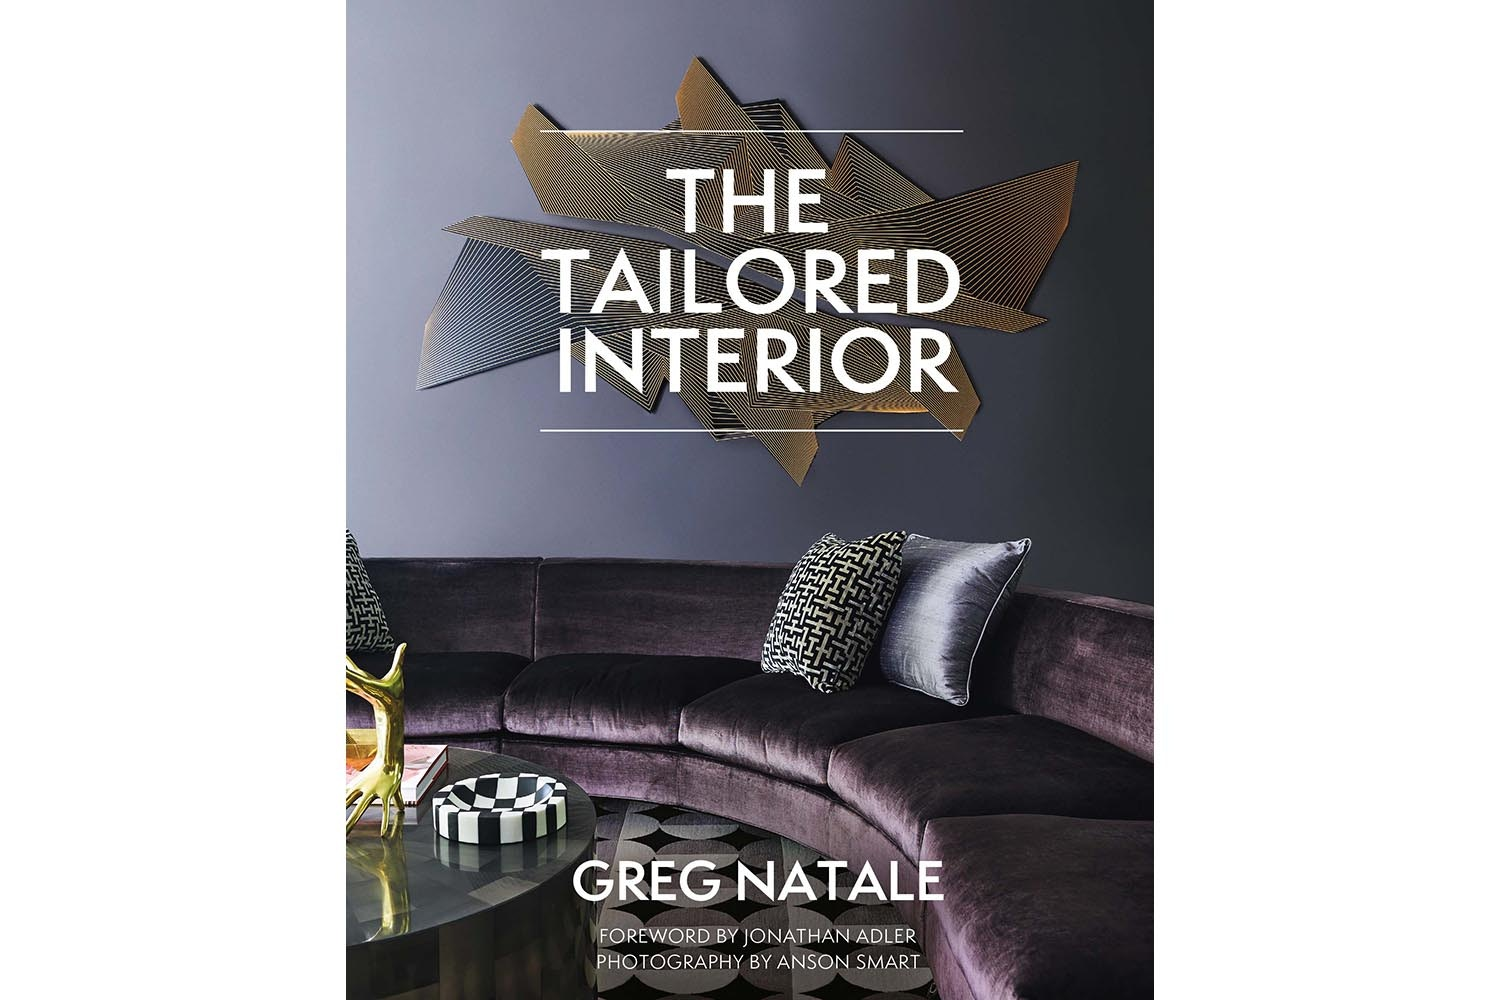 The Tailored Interior Book by Greg Natale for Hardie Grant Books